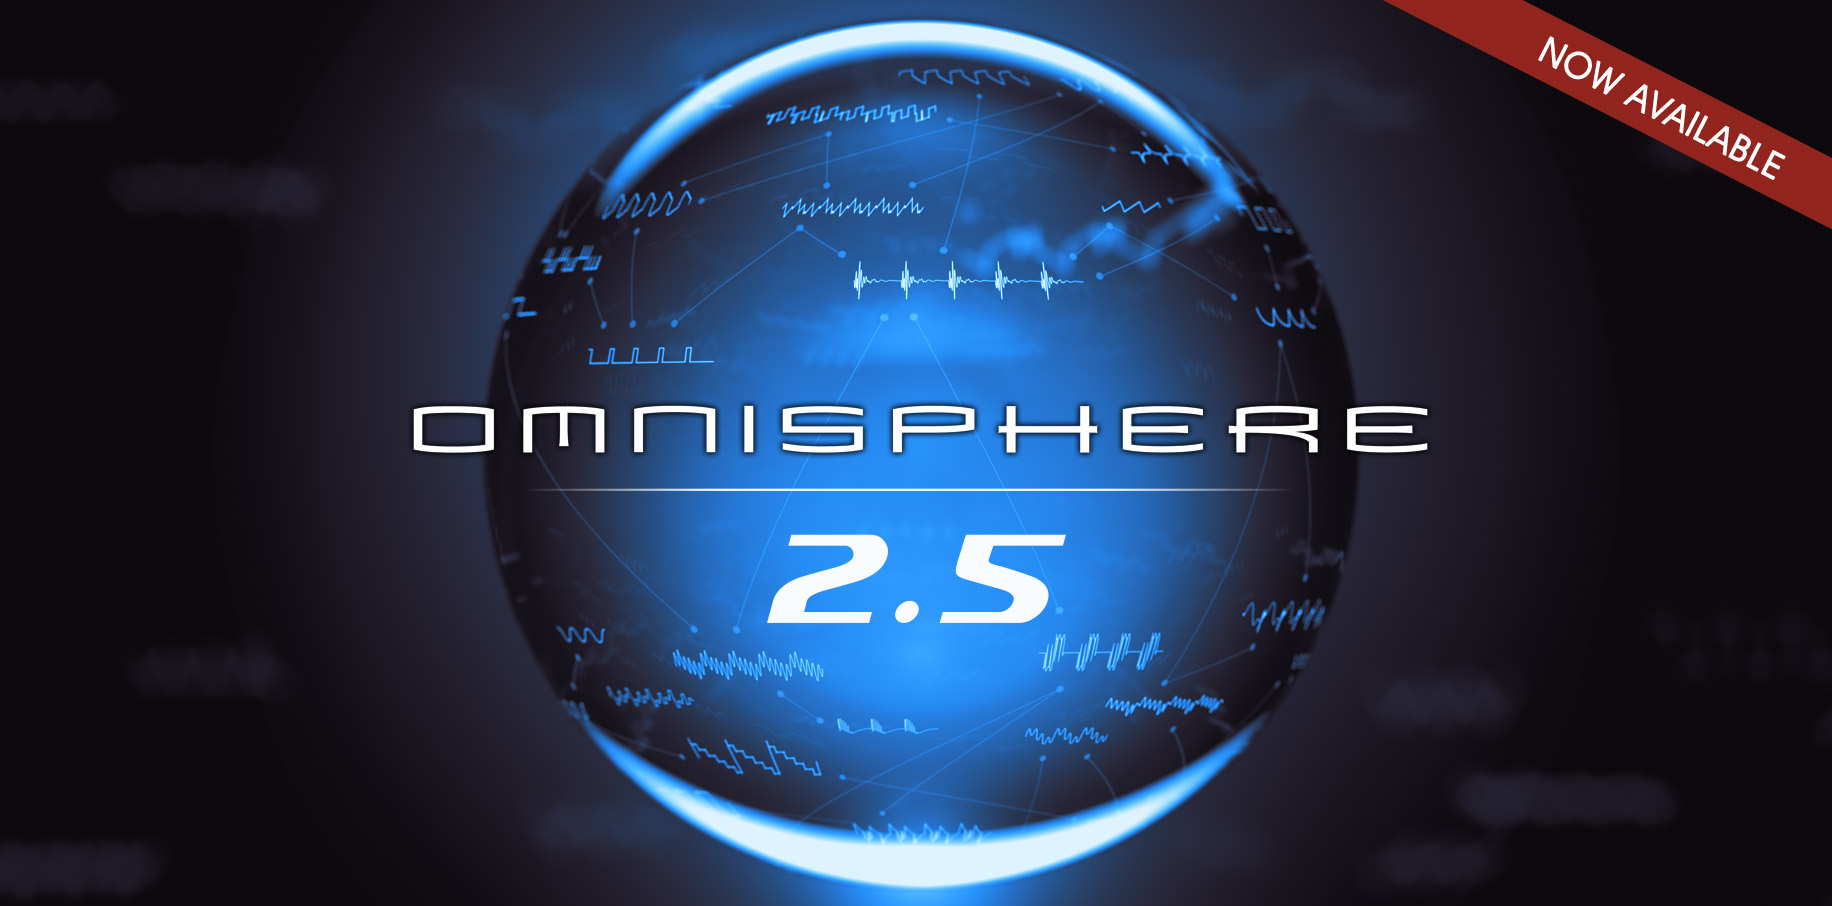 Omnisphere 2 5 update is available to the public now   StrongMocha